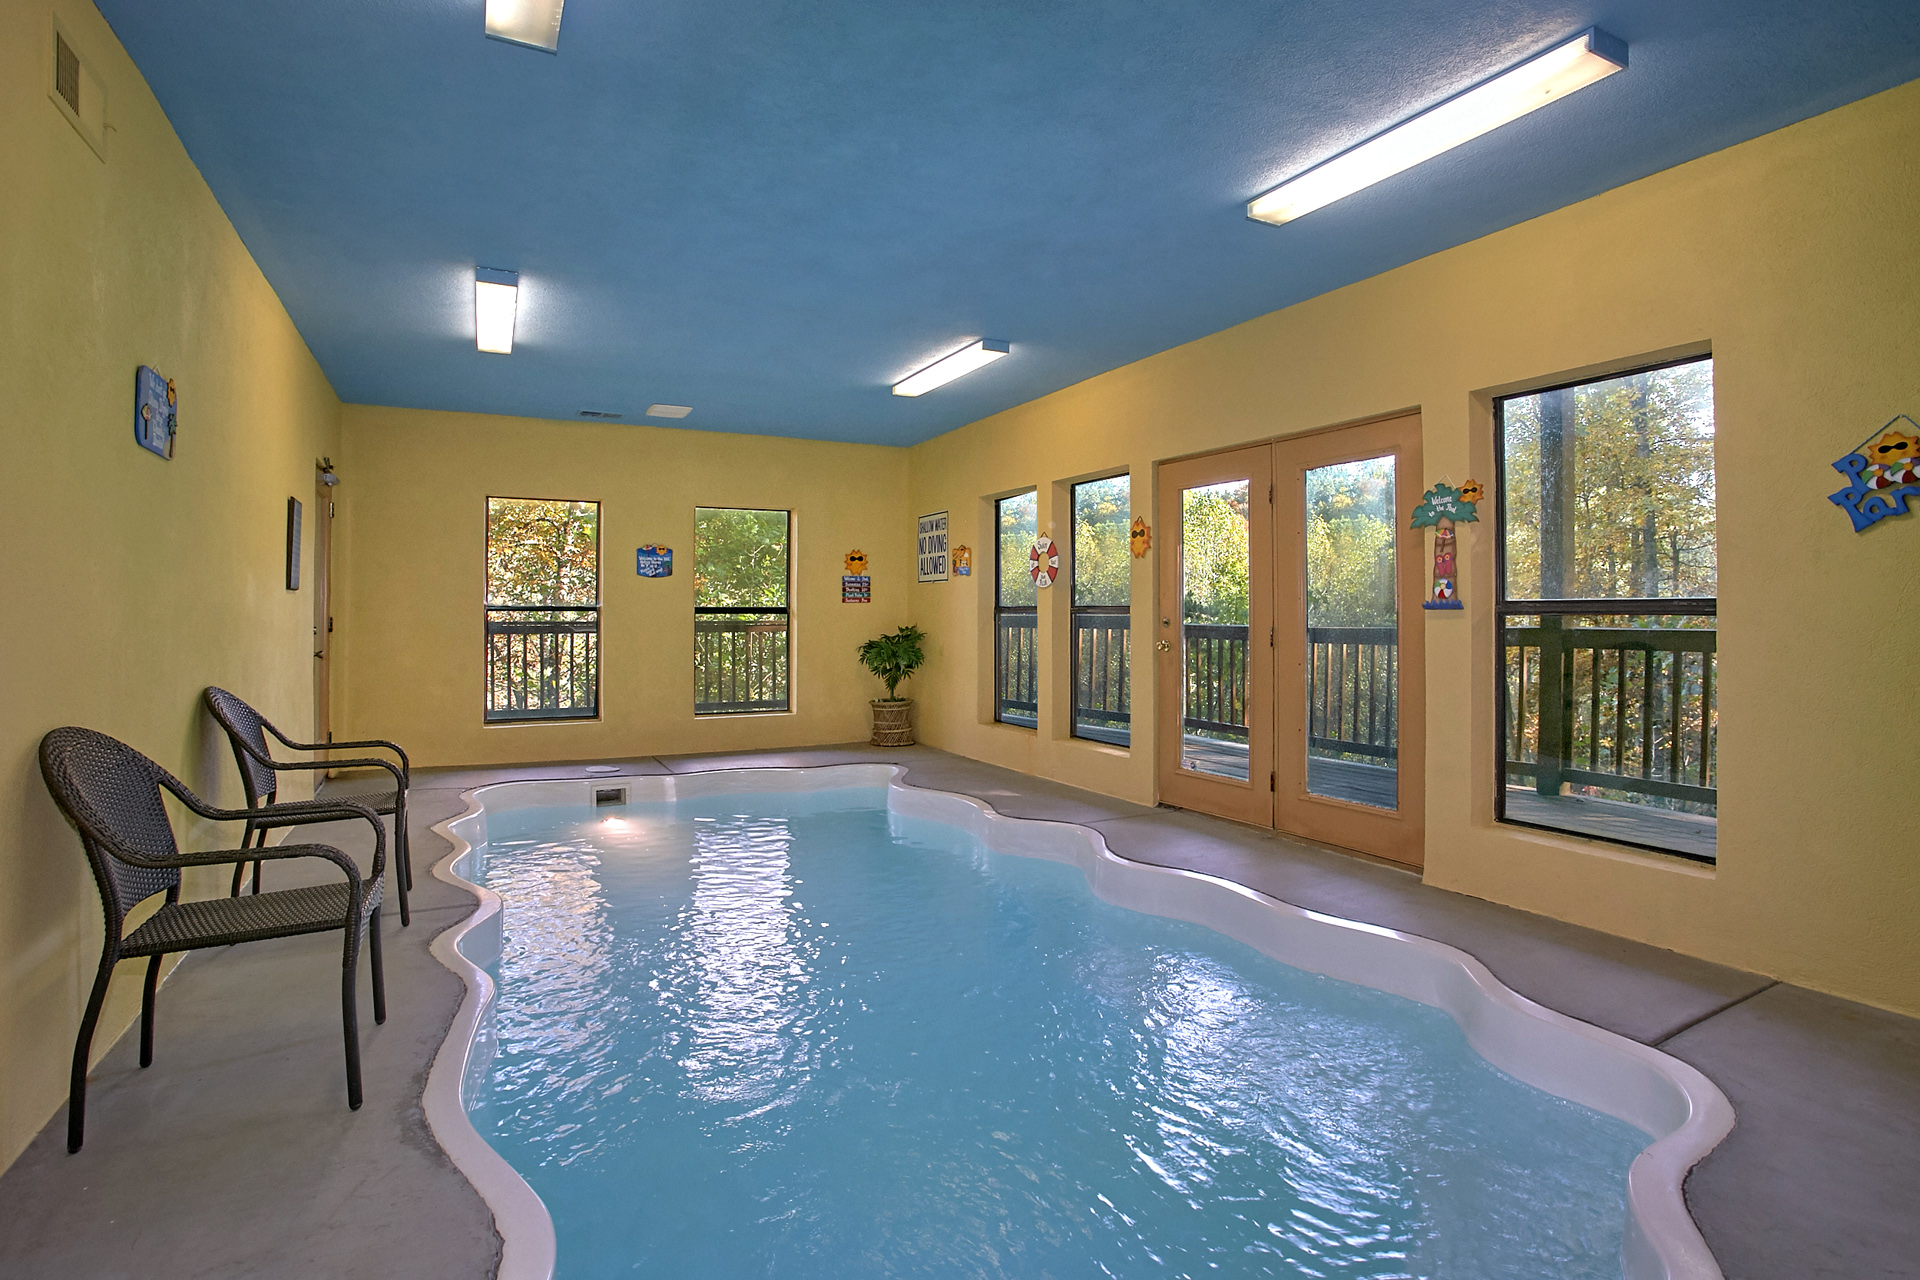 cabin pet pools discount with pool friendly rentals gatlinburg log tennessee cabins private military